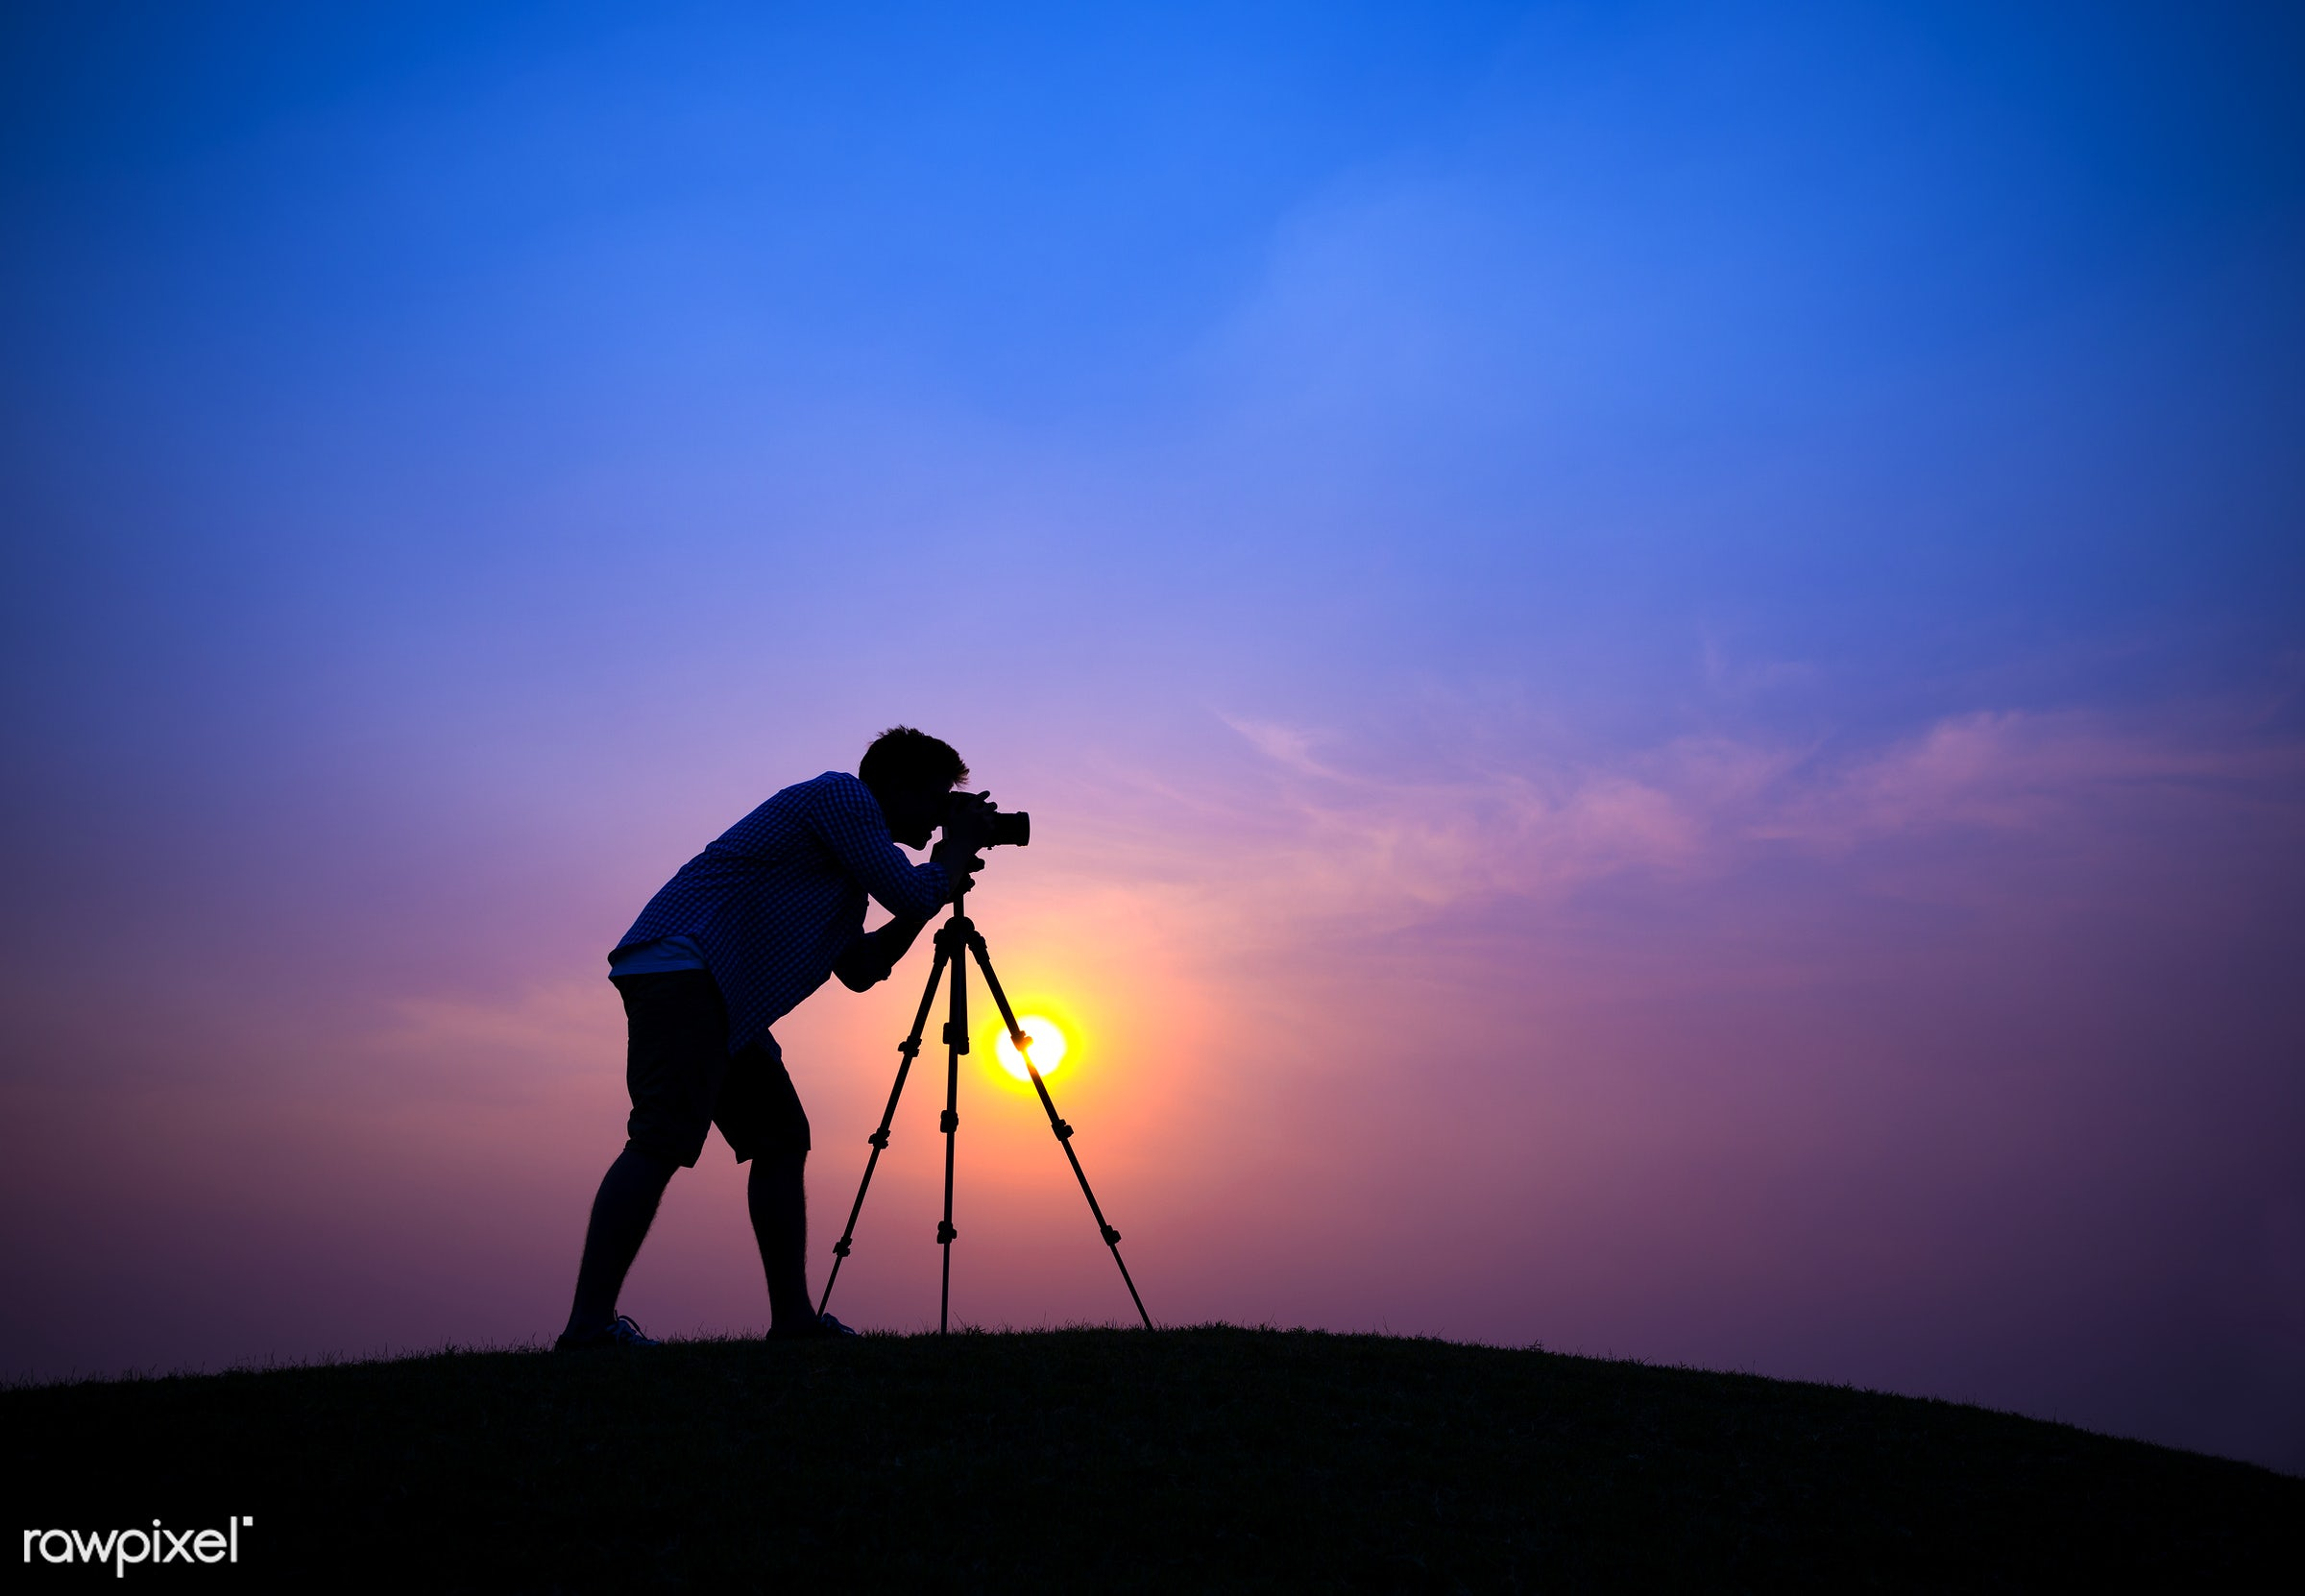 hill, sun, action, aspirations, beauty in nature, camera, cameraman, concepts and ideas, dawn, dusk, environment, evening,...